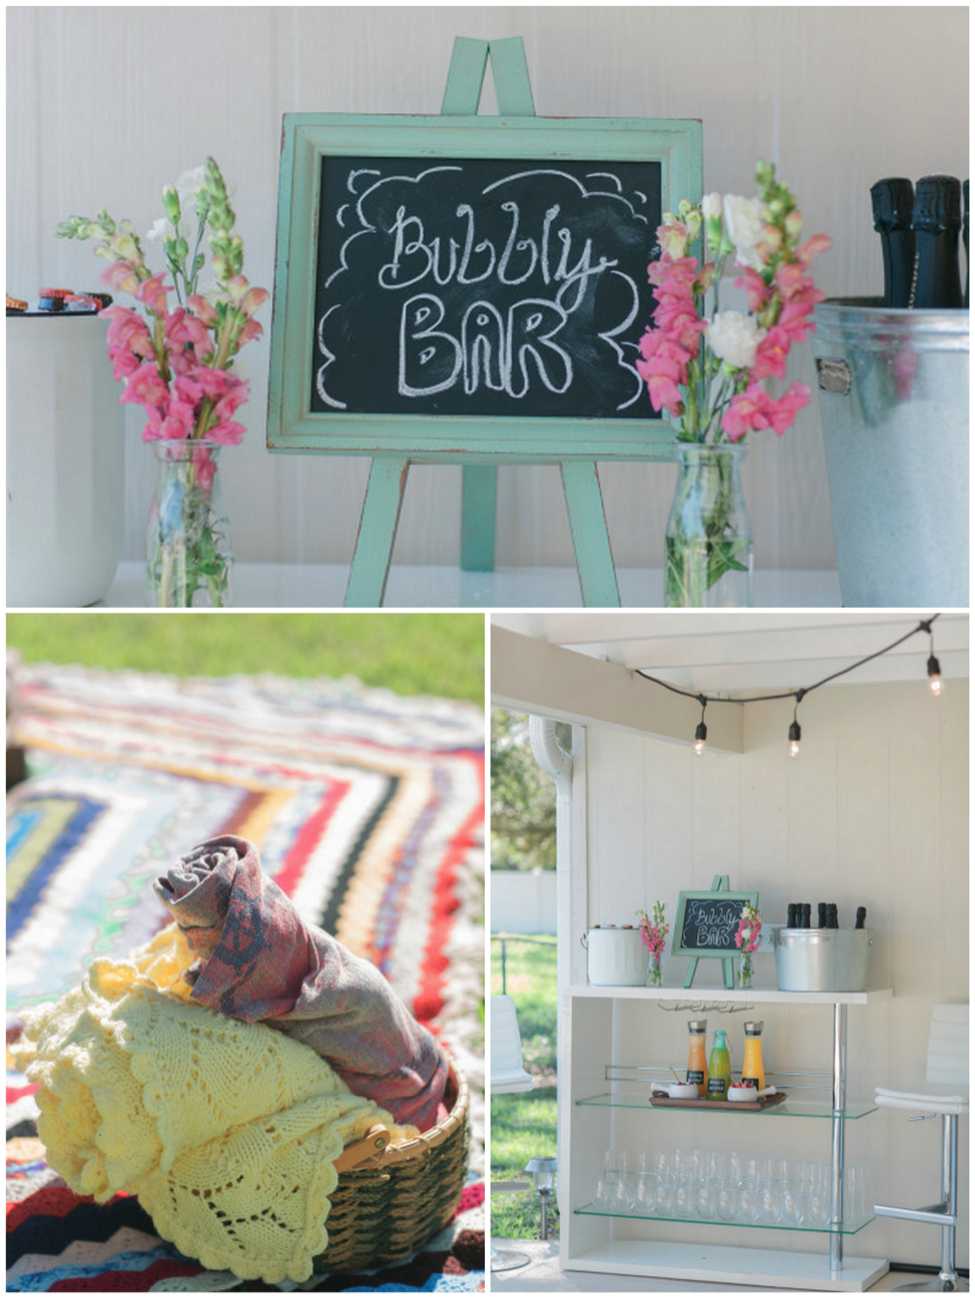 Click the link below to see more of this backyard picnic celebration on Style Me Pretty: http://www.stylemepretty.com/living/2015/04/21/a-southern-backyard-brunch